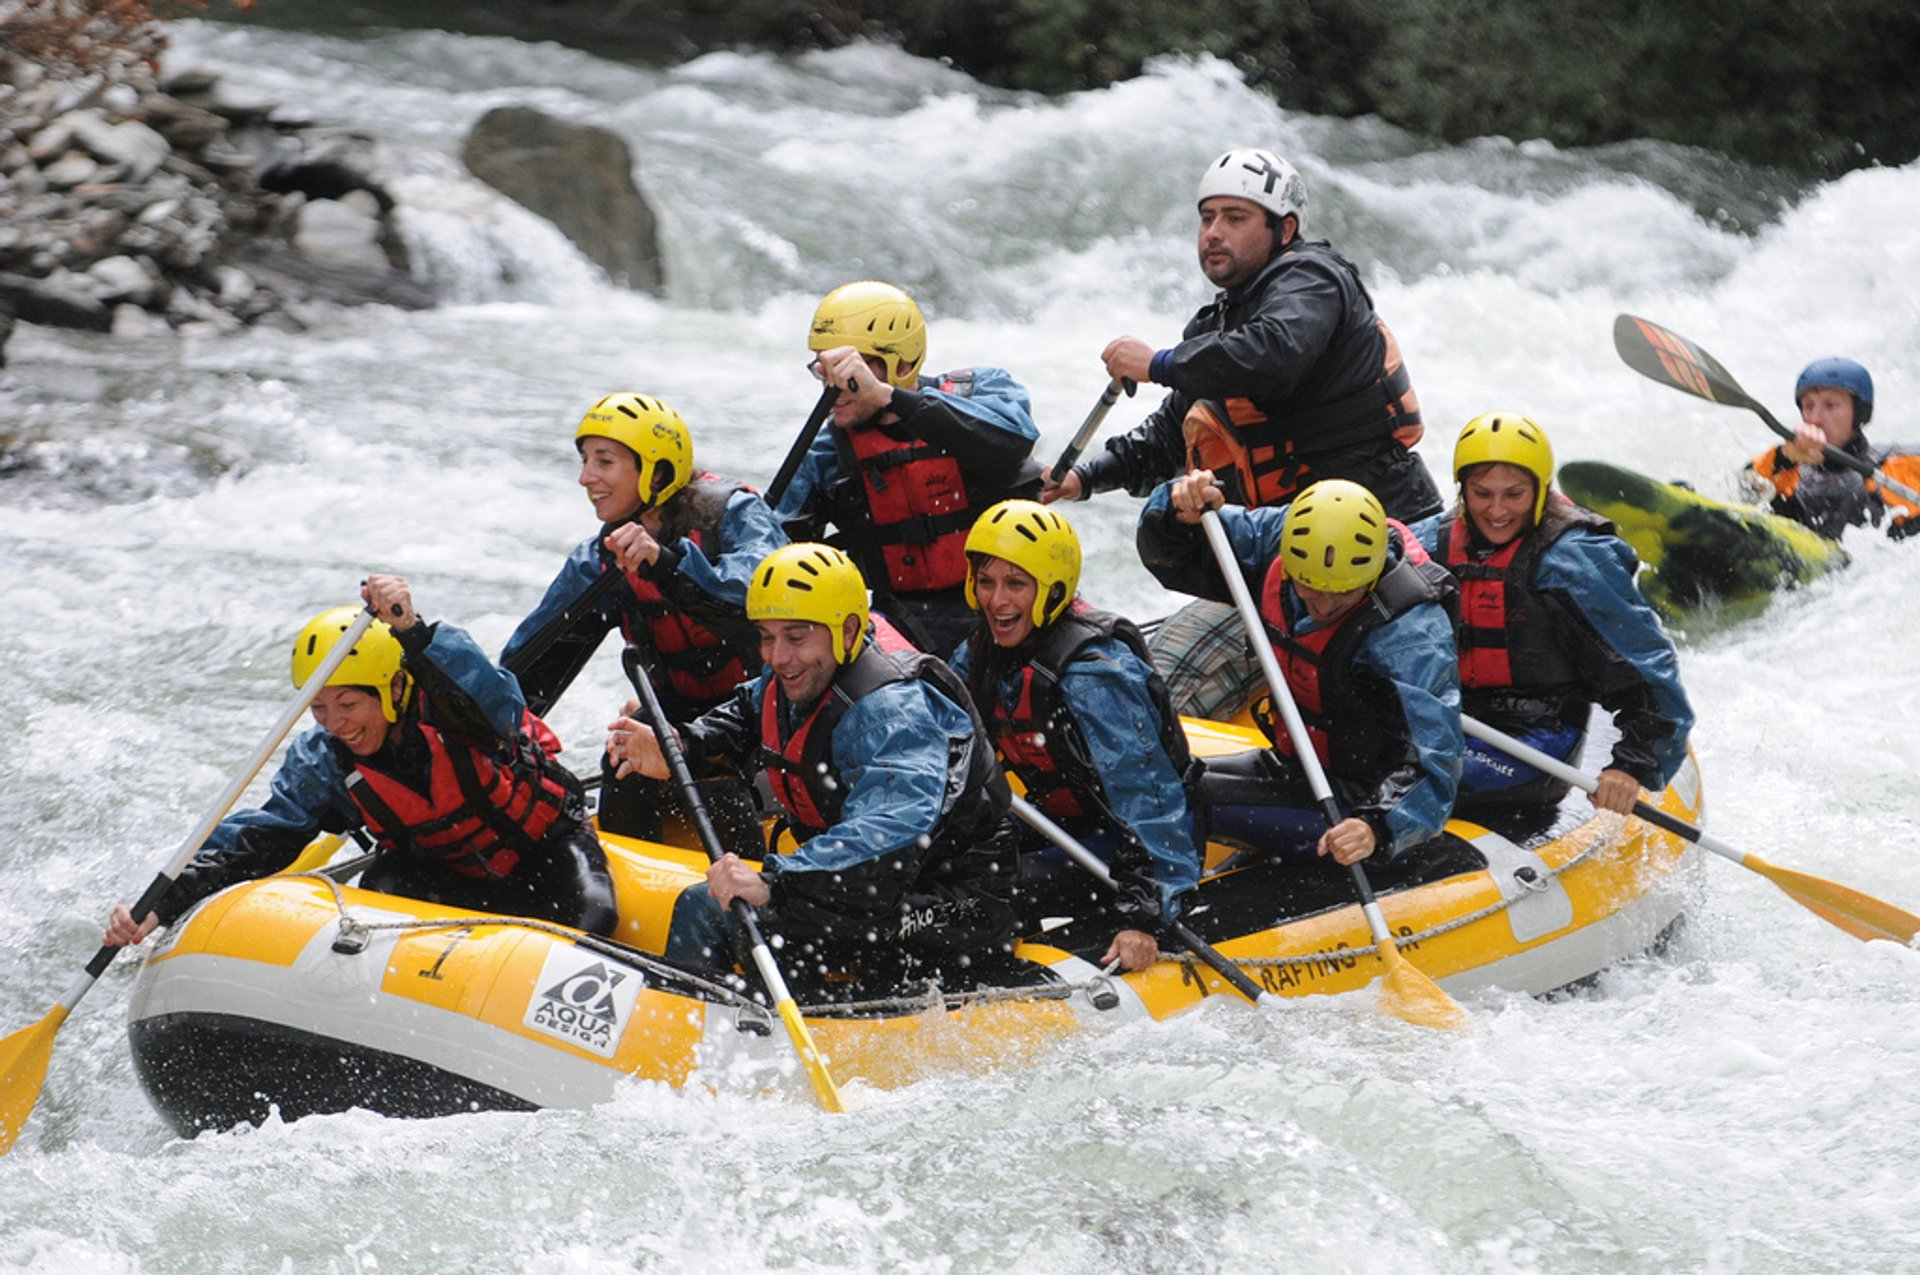 White Water Rafting in Spain - Best Season 2020